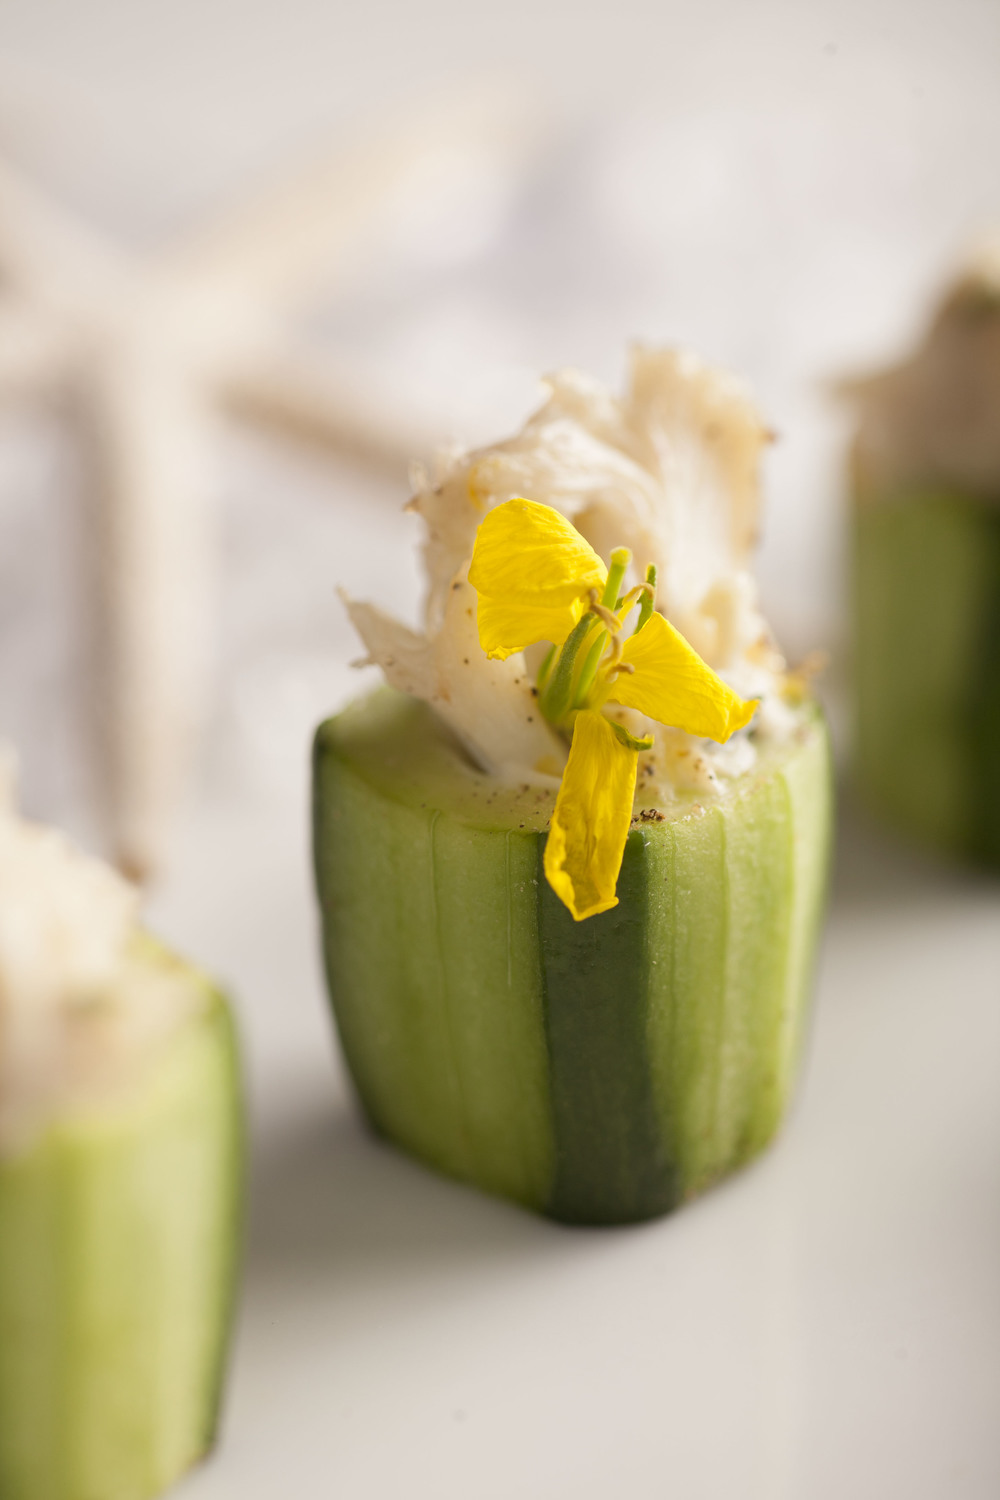 Maryland Blue Claw Crab salad with Meyer Lemon in Persian Cucumber Cups.jpg